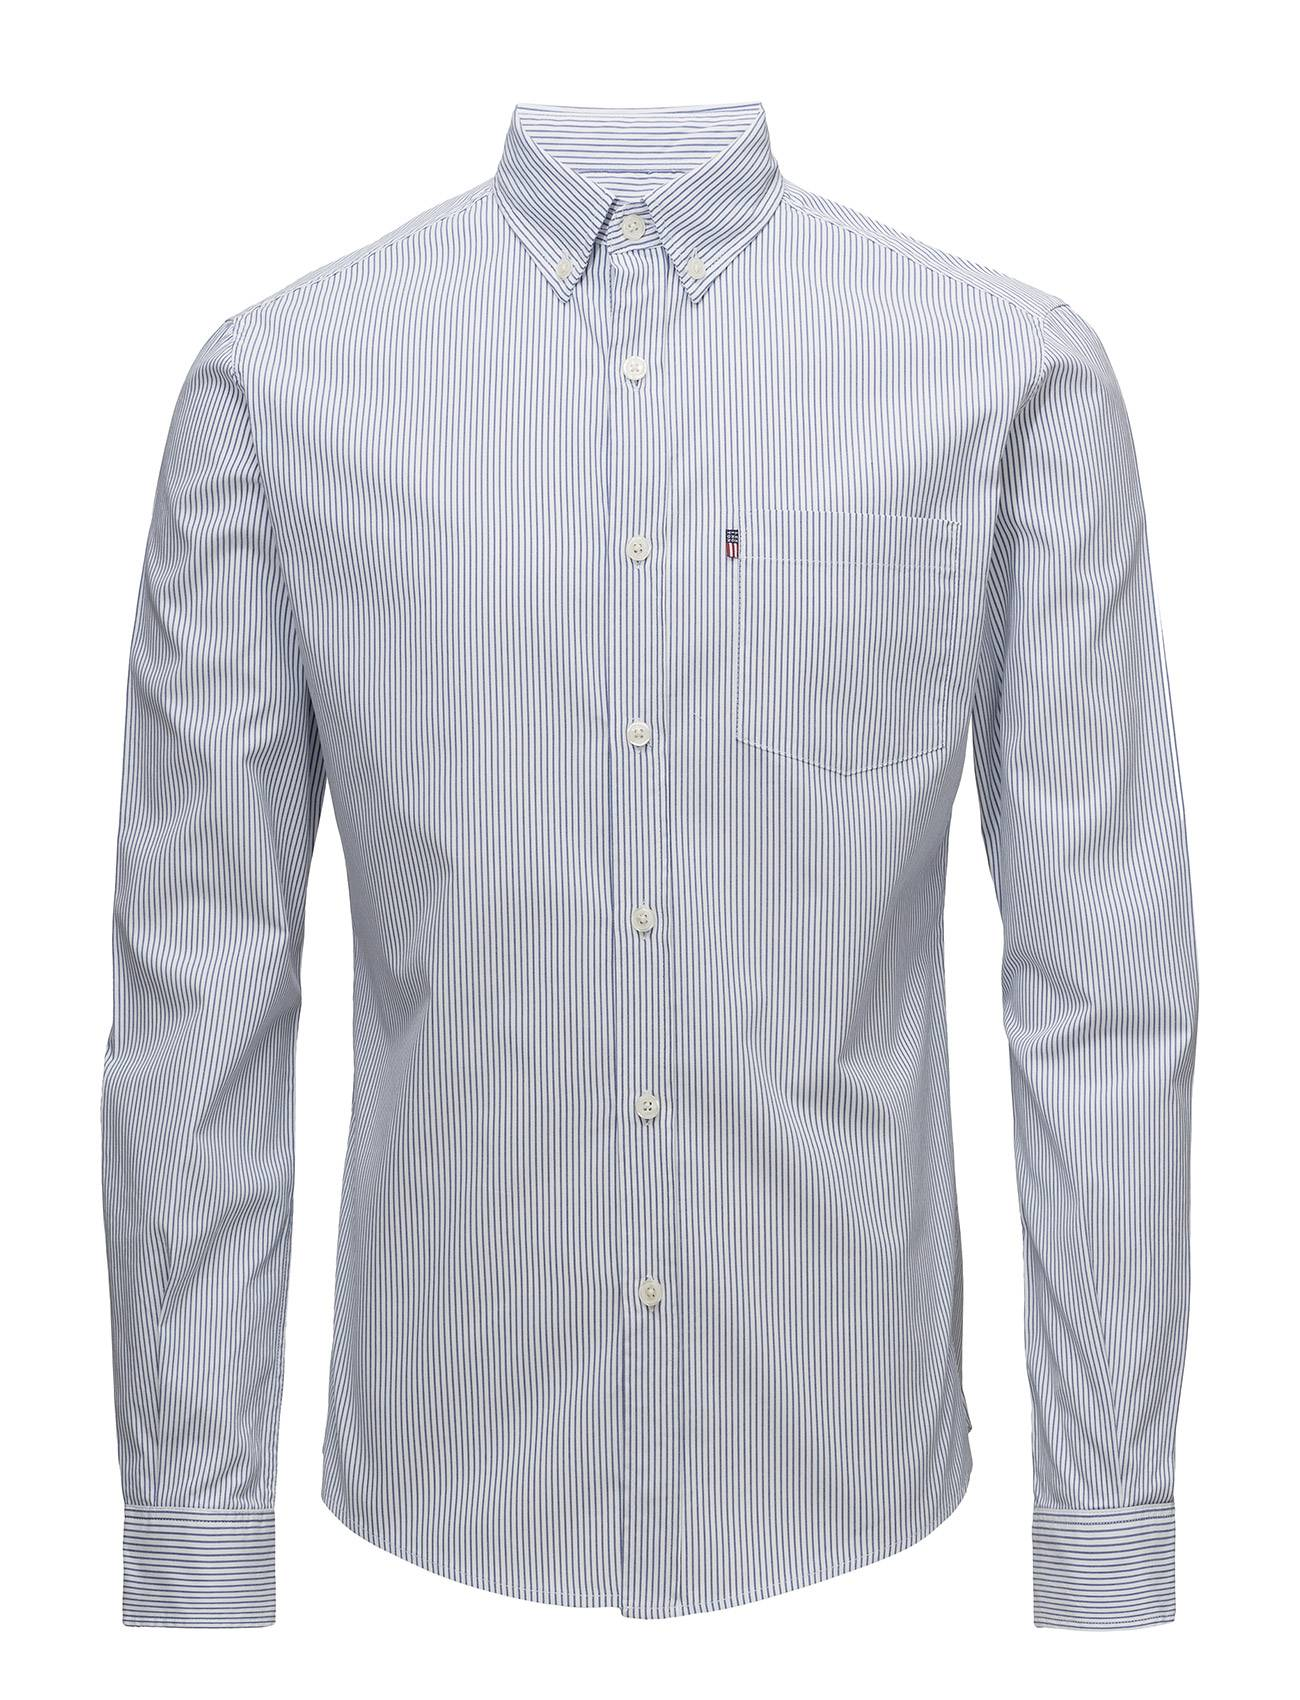 Lexington Clothing Peter Lt Oxford Shirt